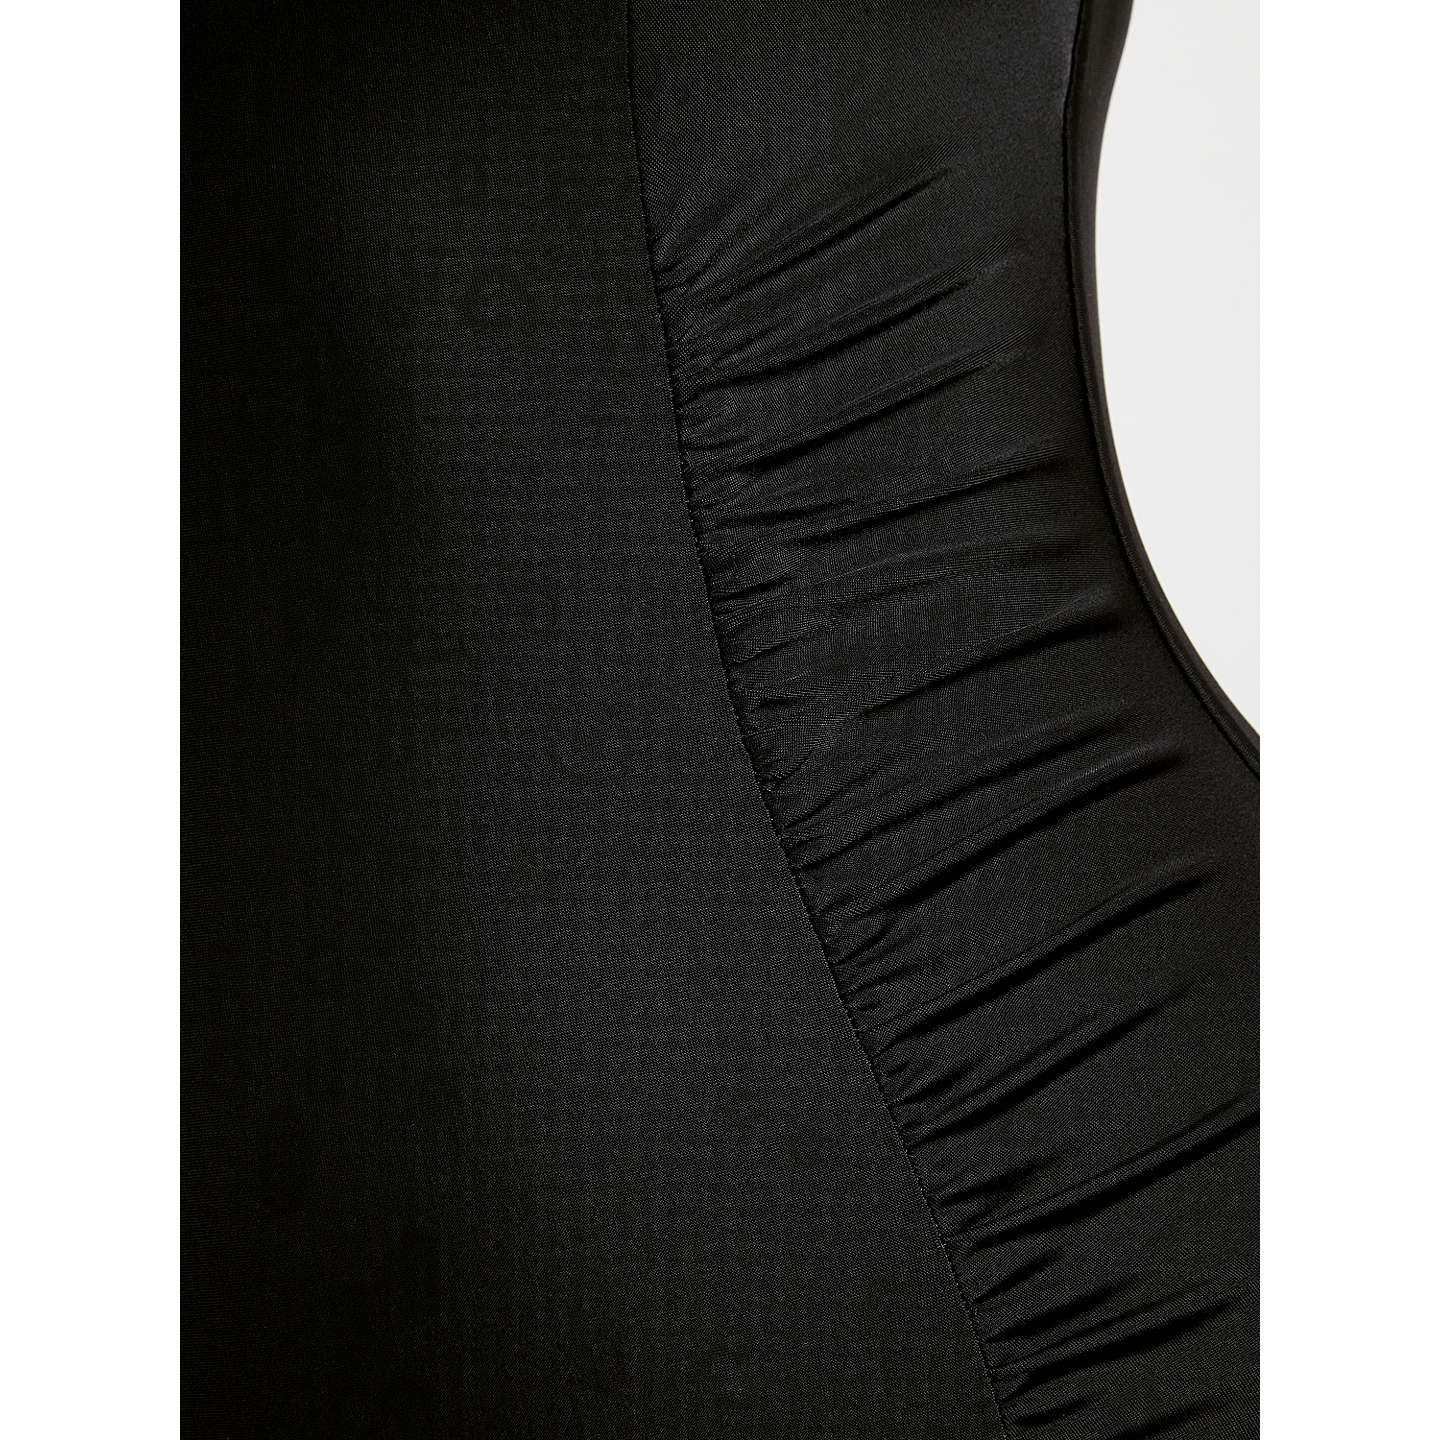 BuyJohn Lewis Control Side Ruched Swimsuit, Black, 10 Online at johnlewis.com